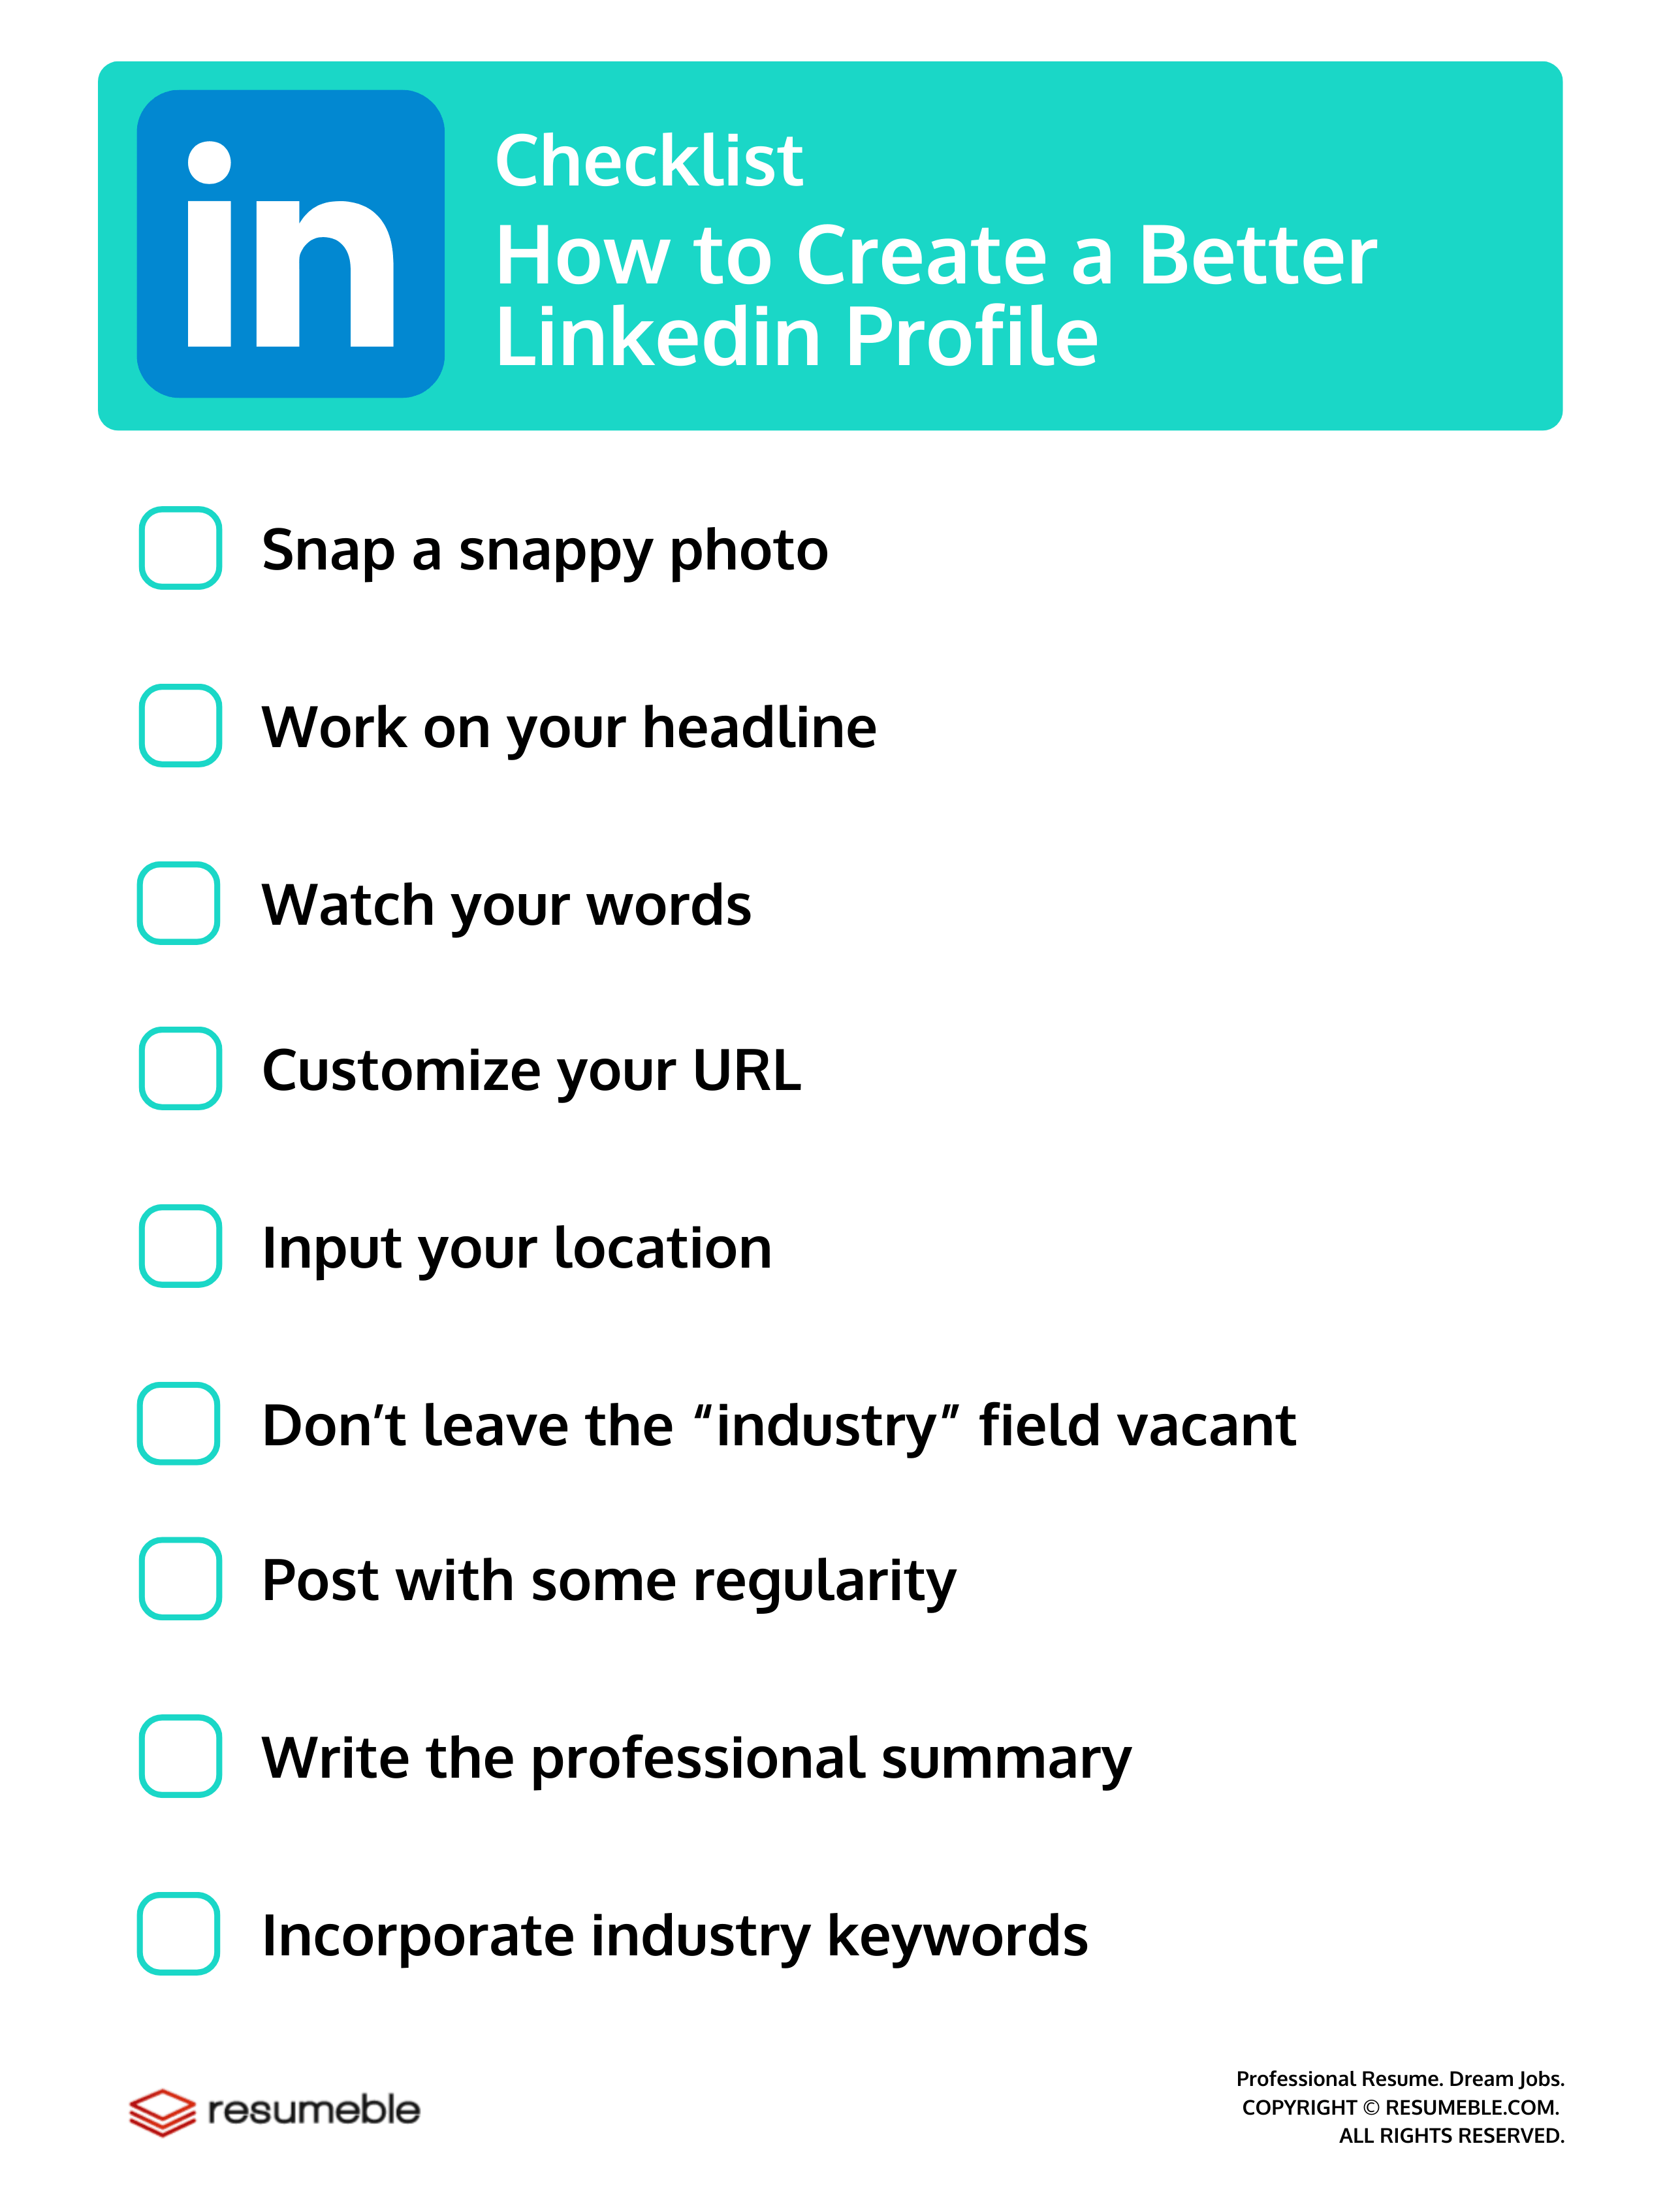 How to Create a Better Linkedin Profile – Checklist